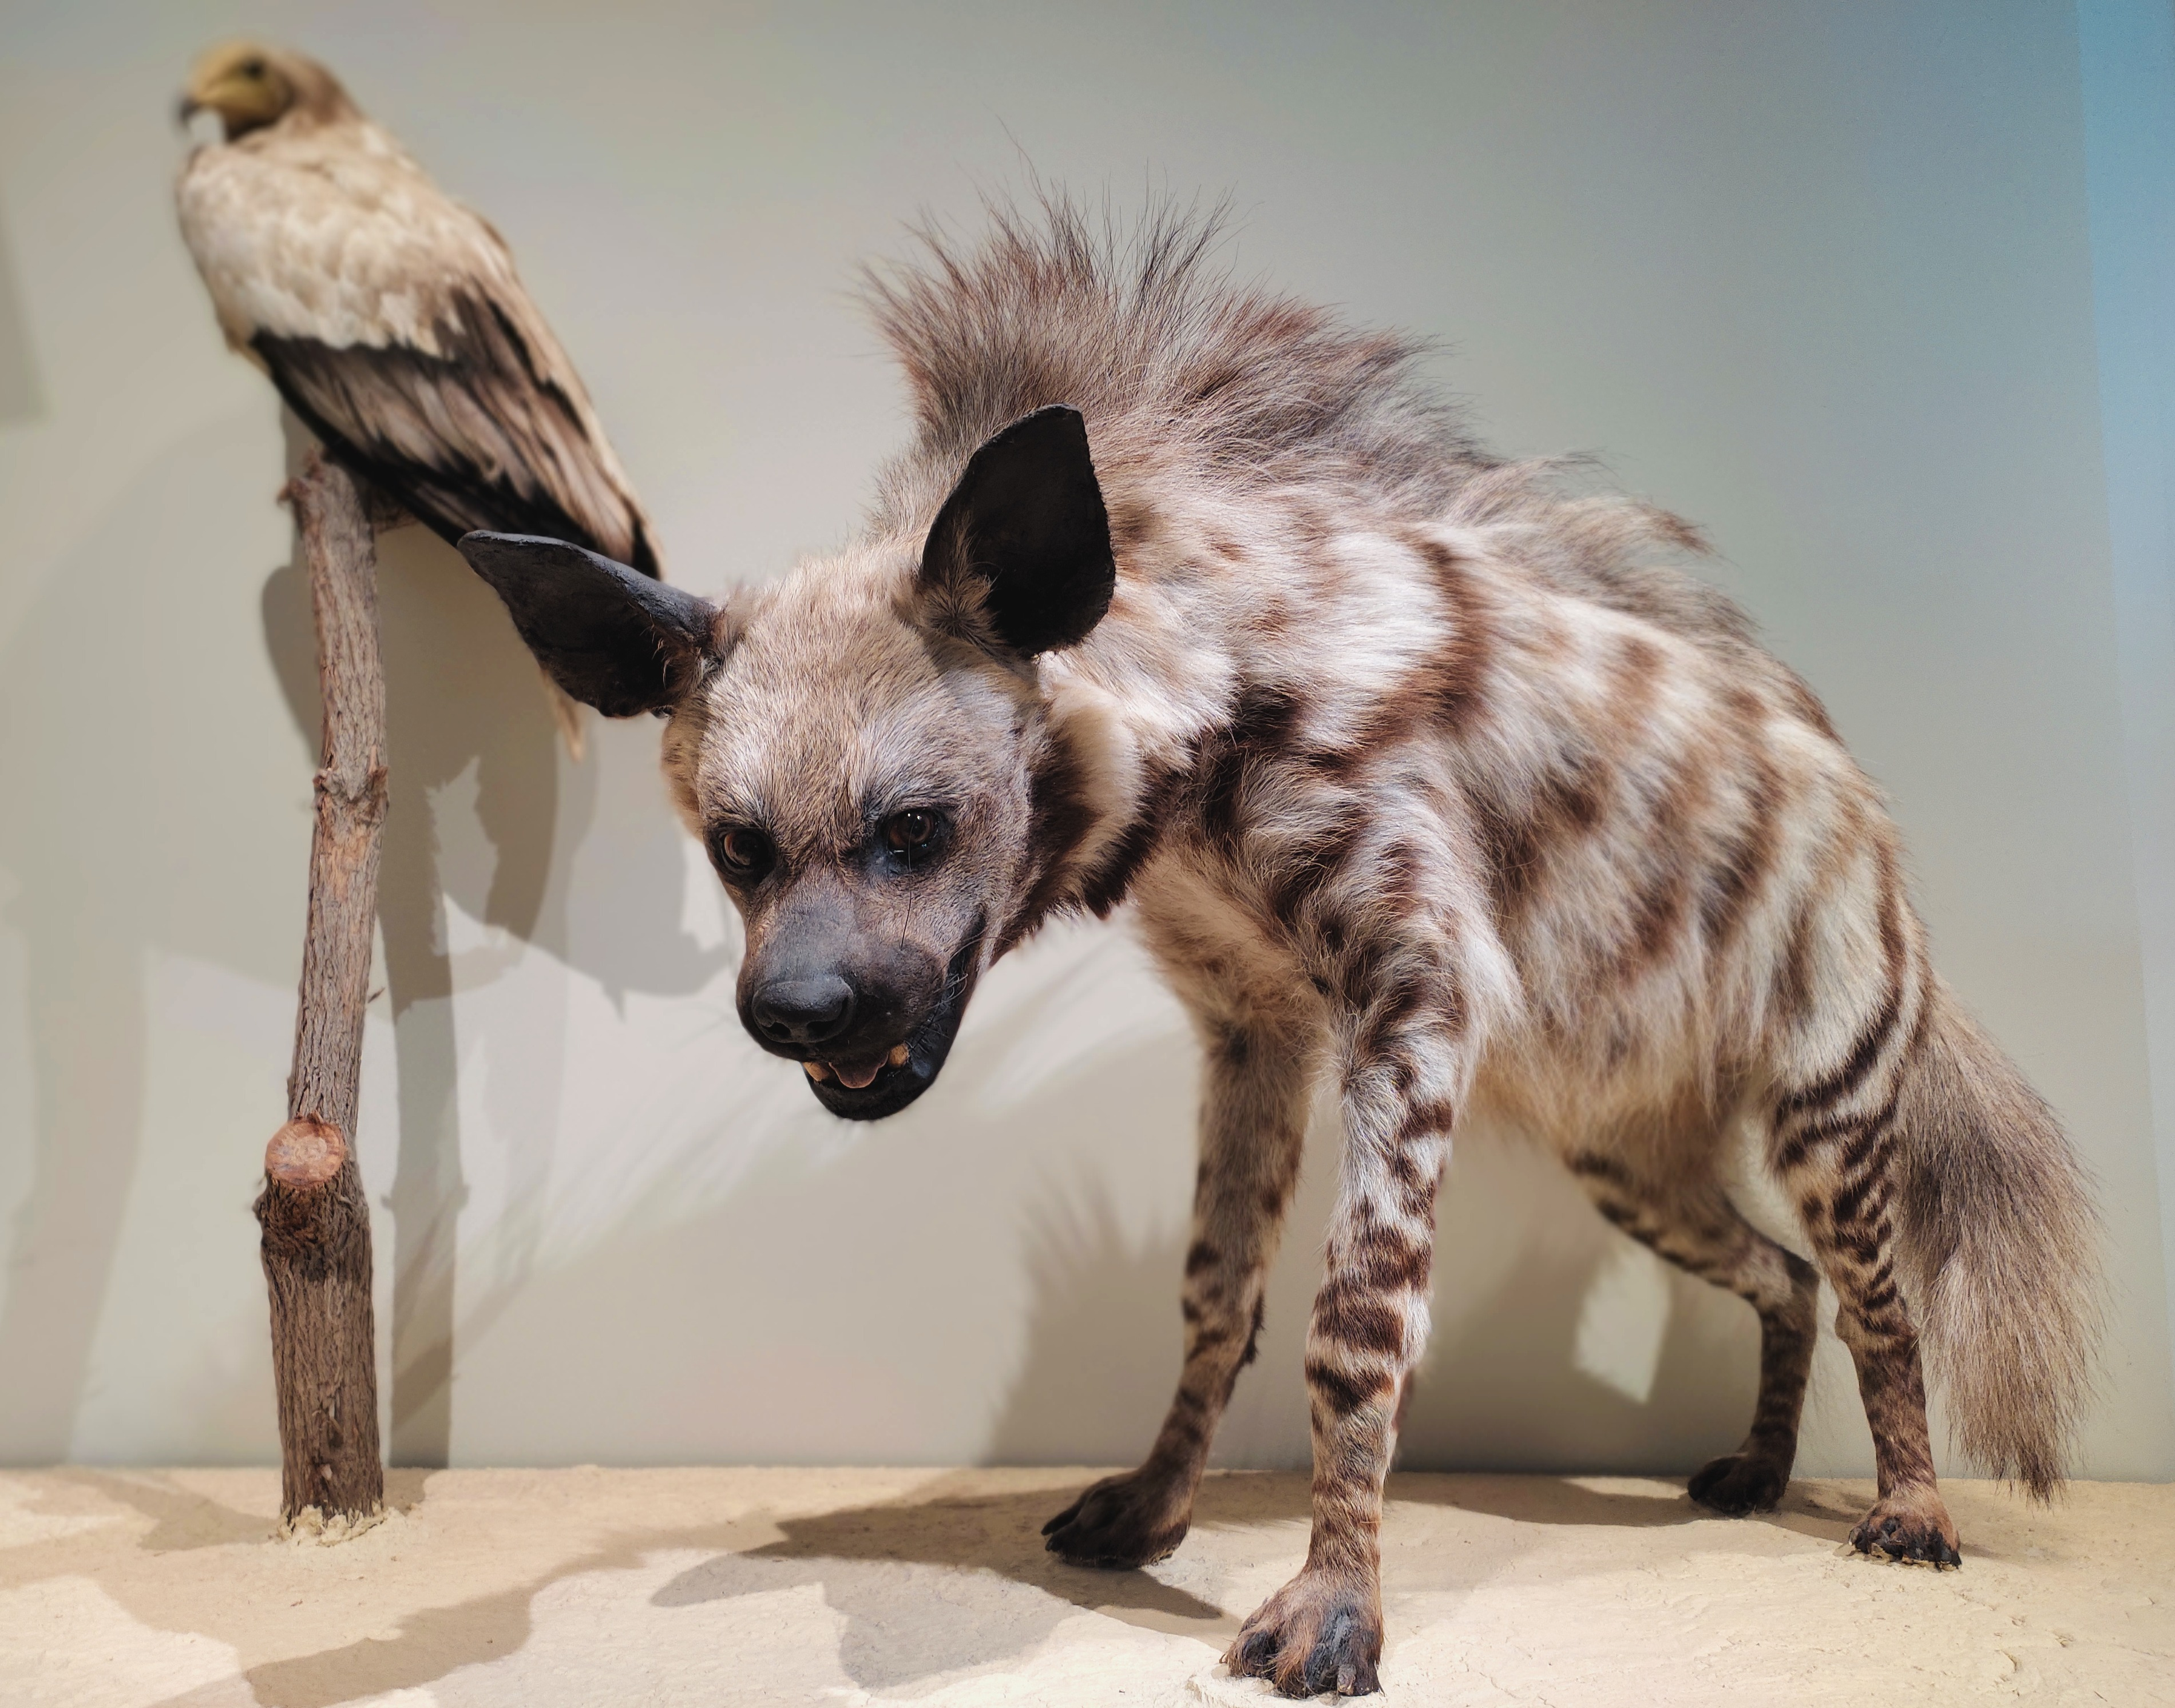 Striped hyena and Egyptian vulture